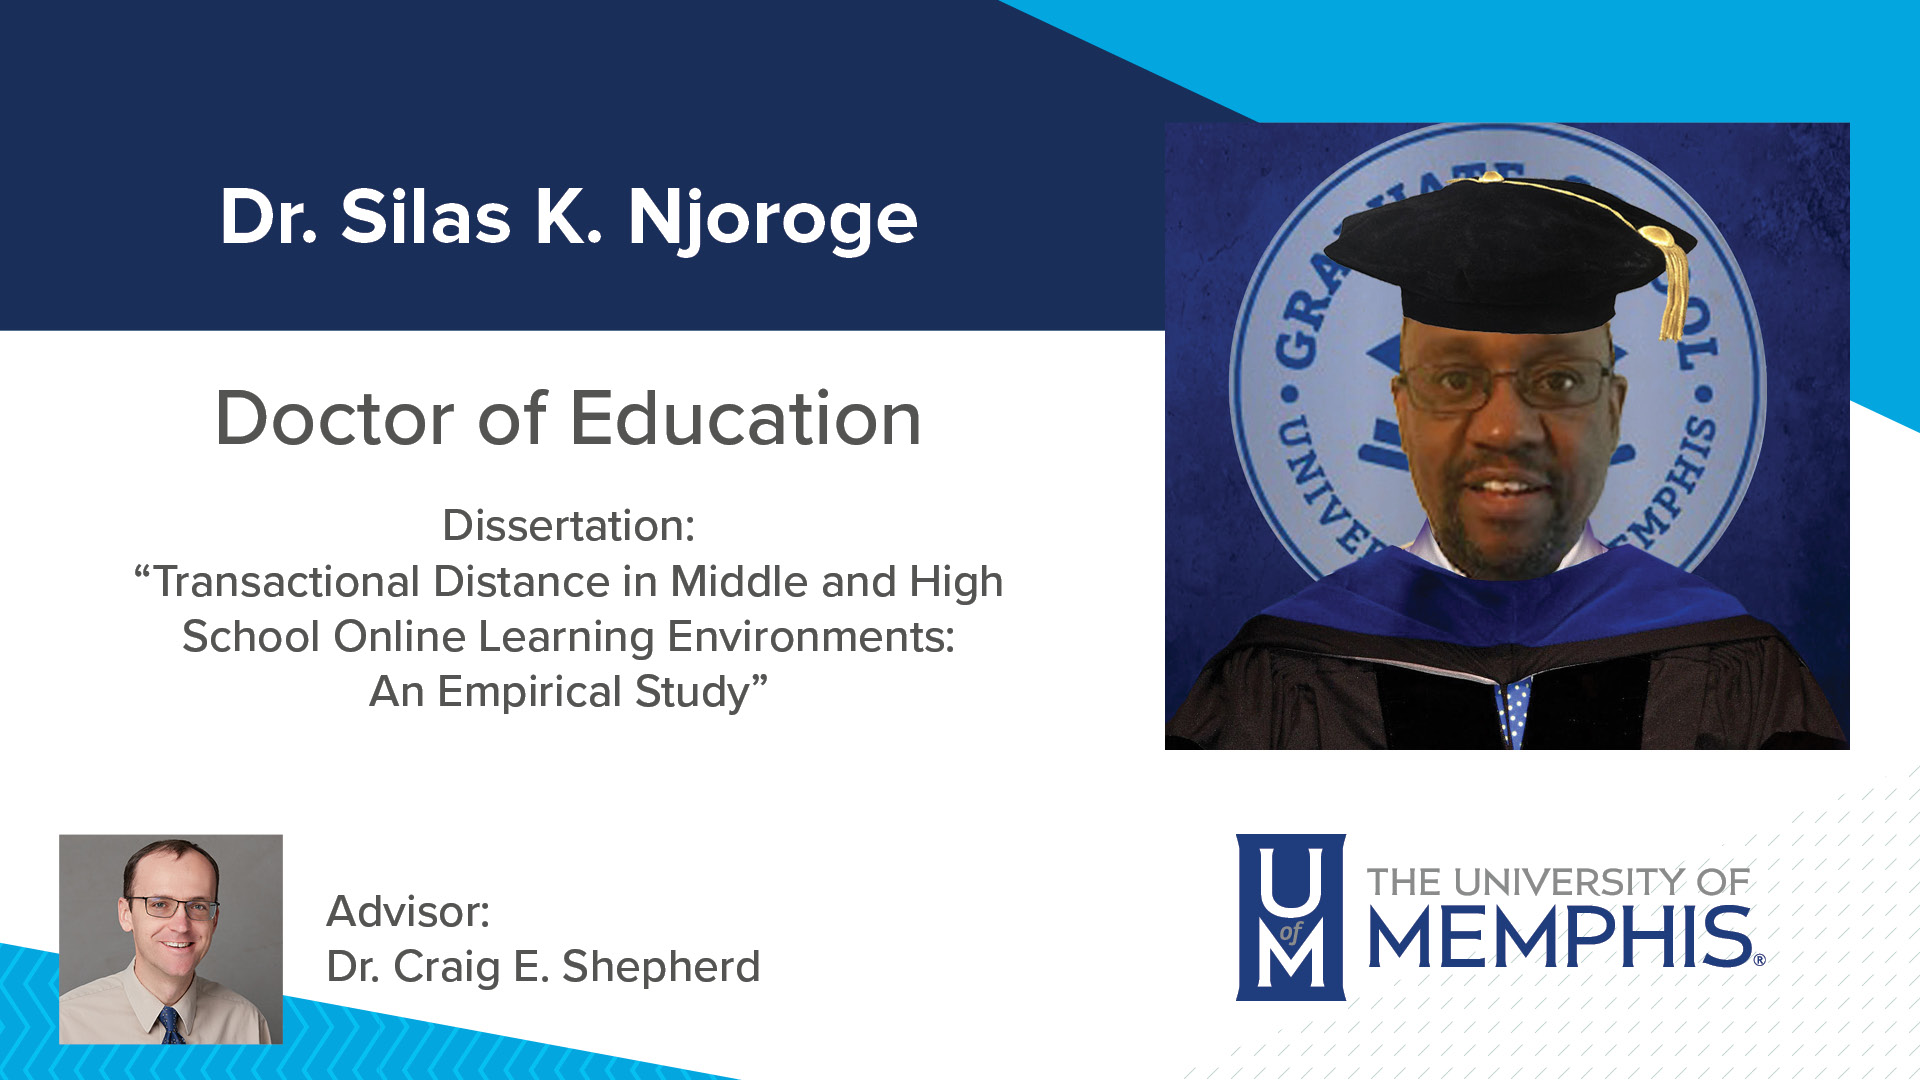 """Dr. Silas K. Njoroge Dissertation: """"Transactional Distance in Middle and High School Online Learning Environments: An Empirical Study"""" Major Professor: Dr. Craig E. Shepherd"""